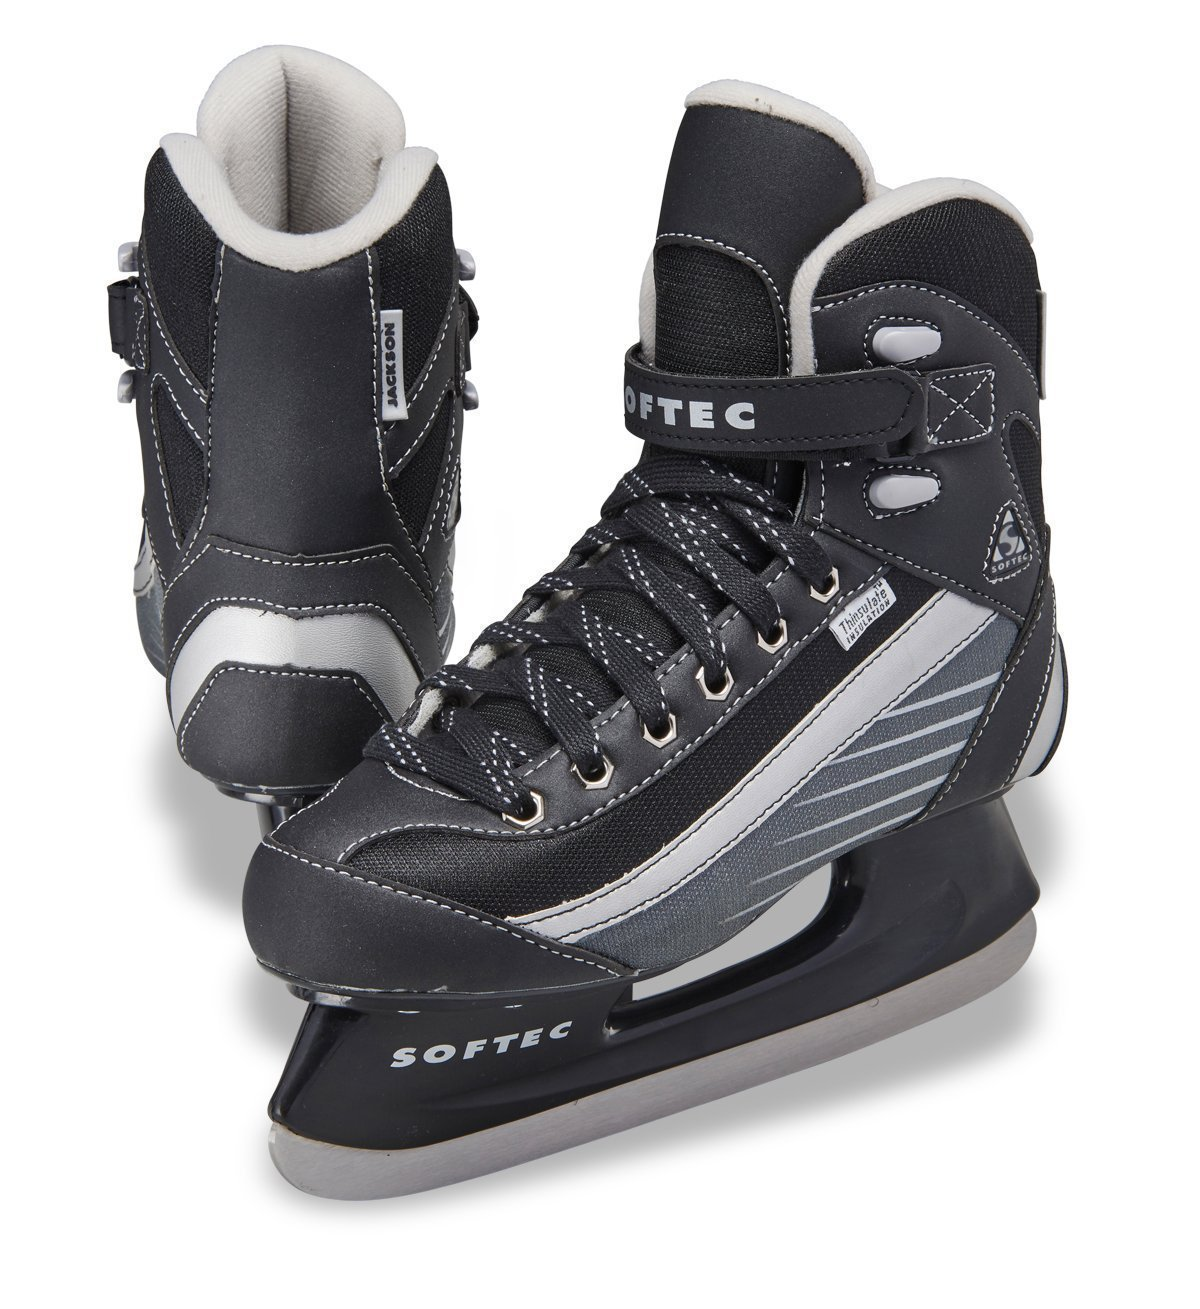 Jackson Ultima Softec Sport ST6107 Black Ice Skates for Boys, Size: Youth 11 (Kids) by Jackson Ultima